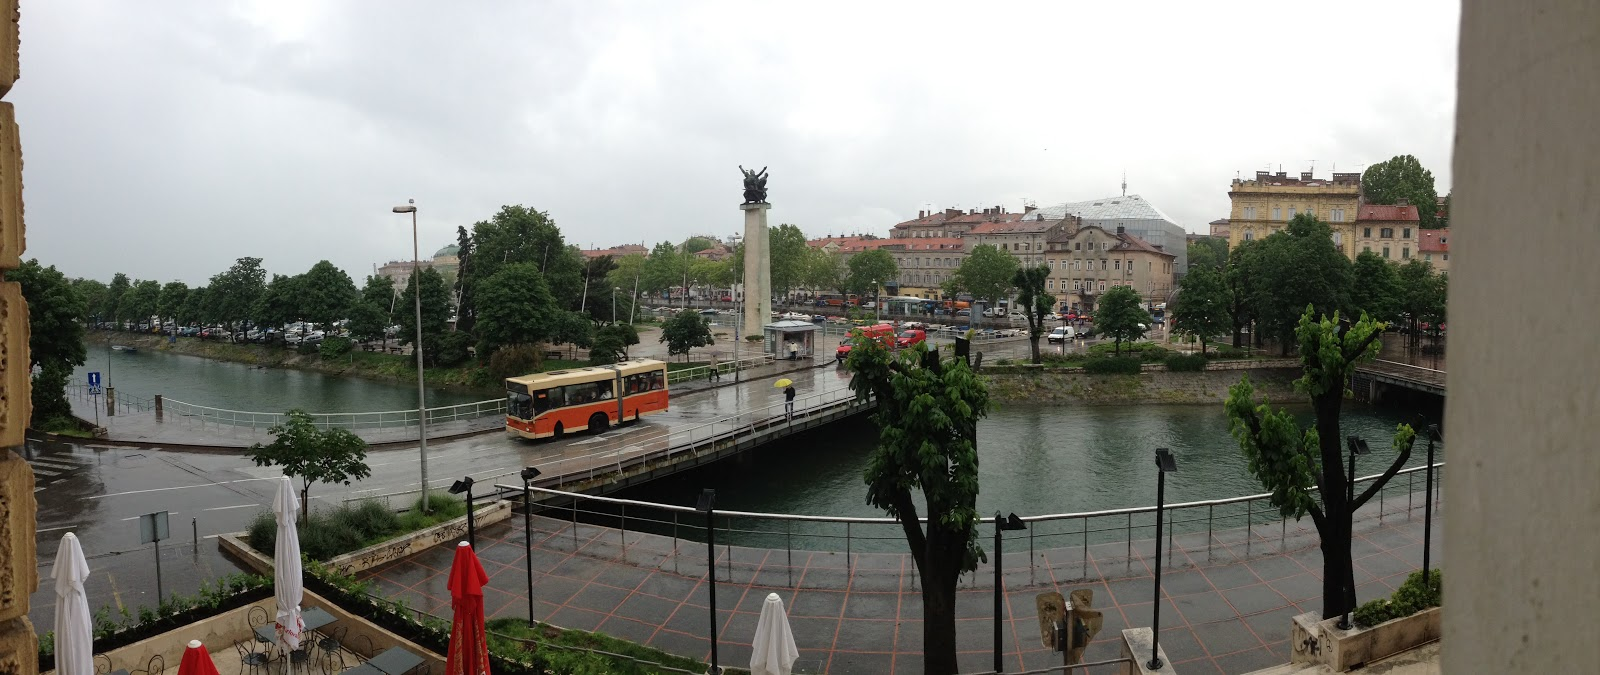 View from our room at Hotel Continental, Rijeka